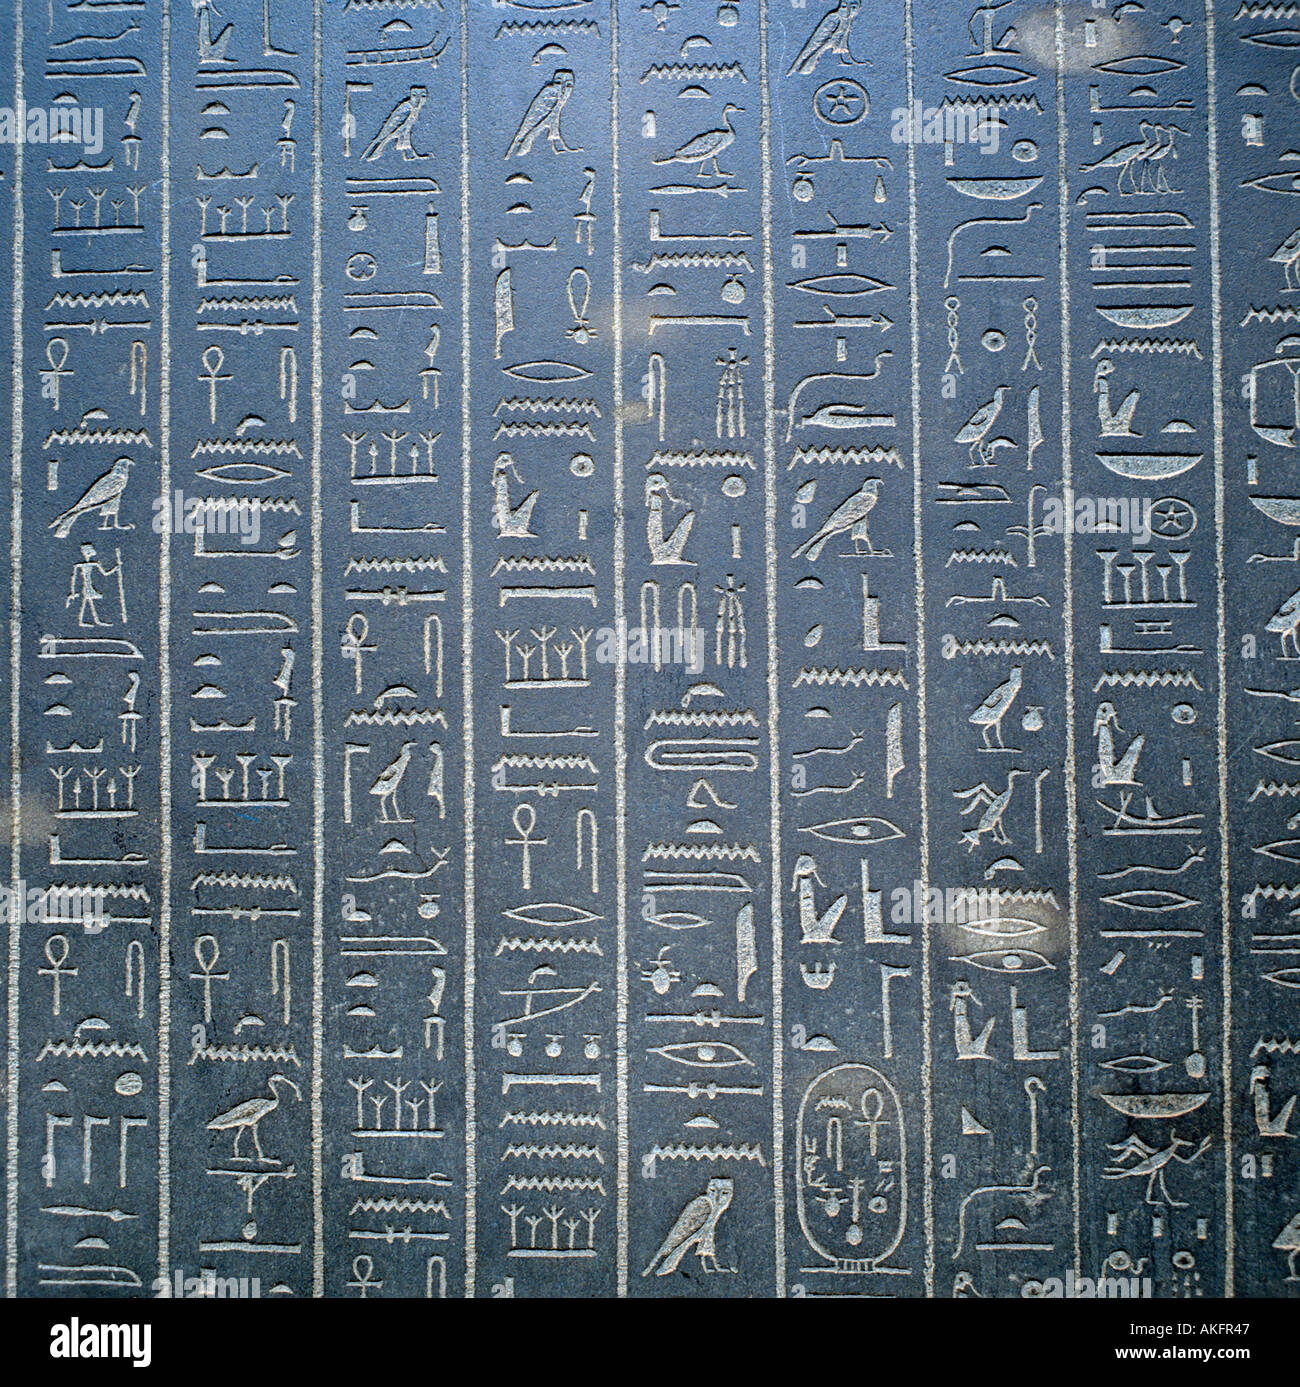 hieroglyphs from theben egyptian section british museum city of london england great britain editorial use only - Stock Image